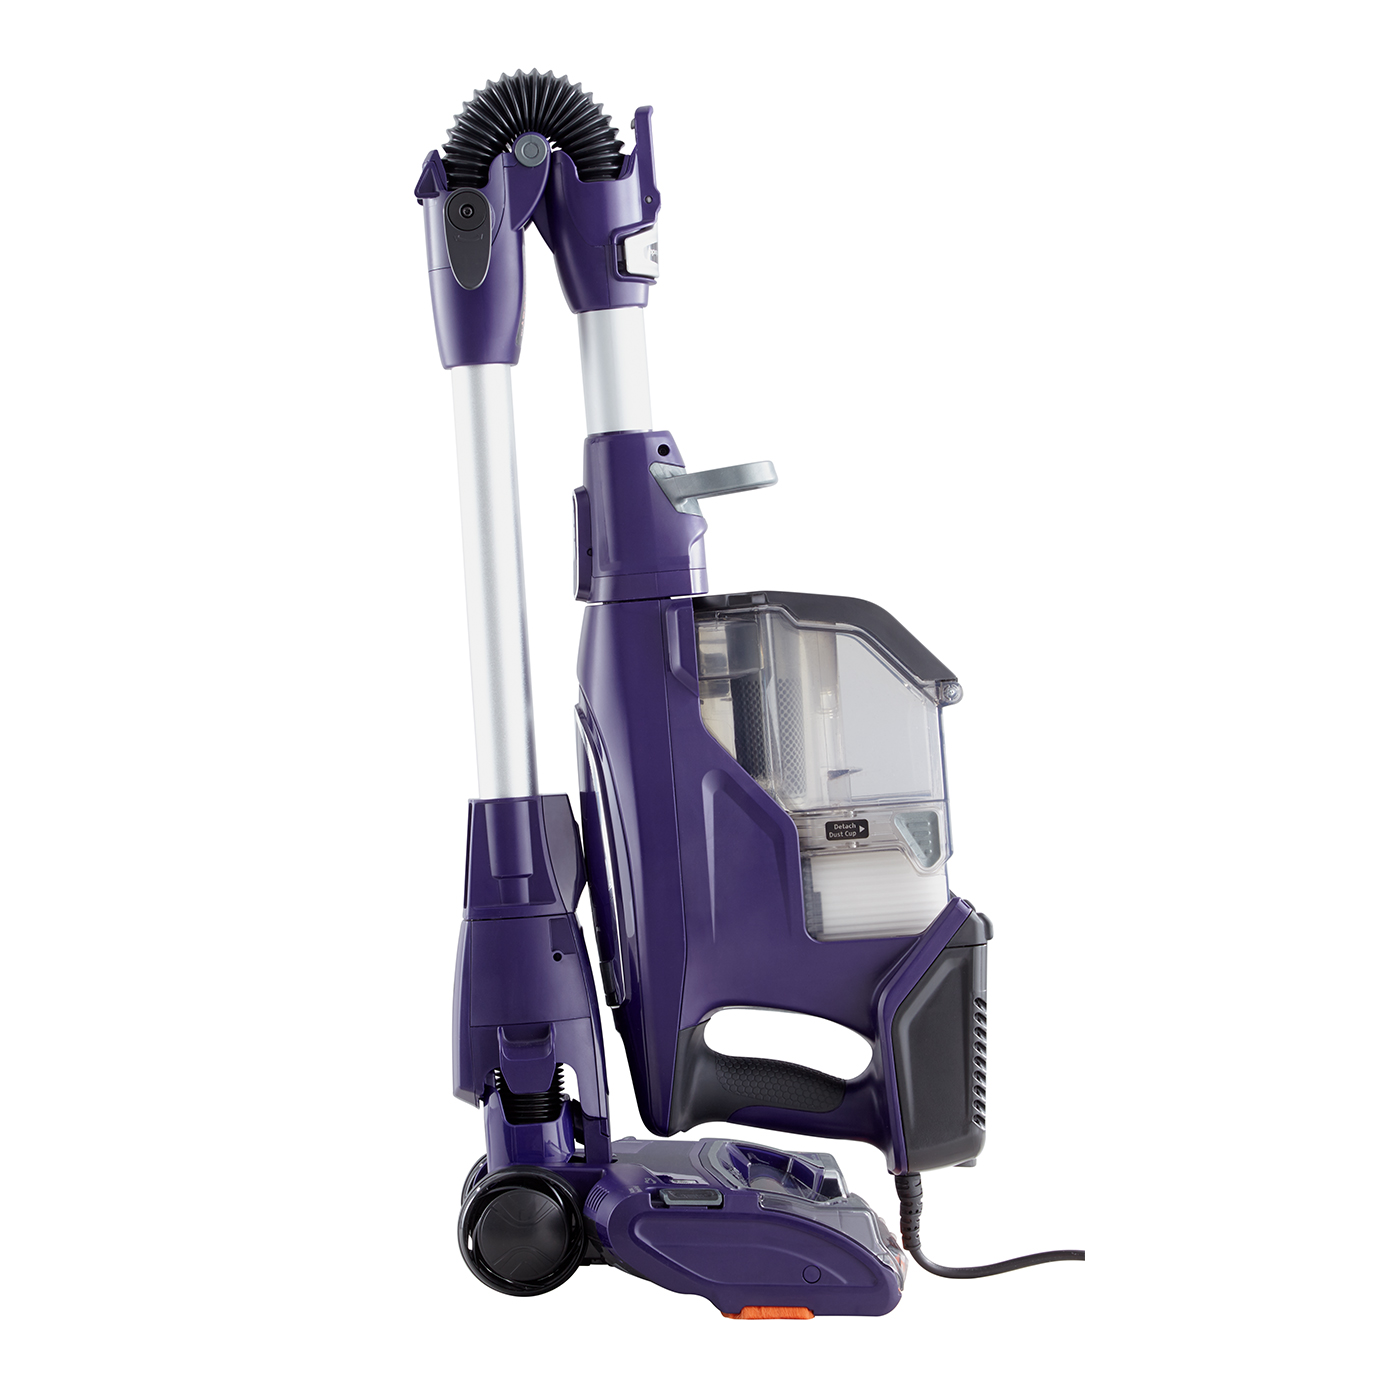 Shark Duoclean Corded Stick Vacuum Cleaner Hv390uk